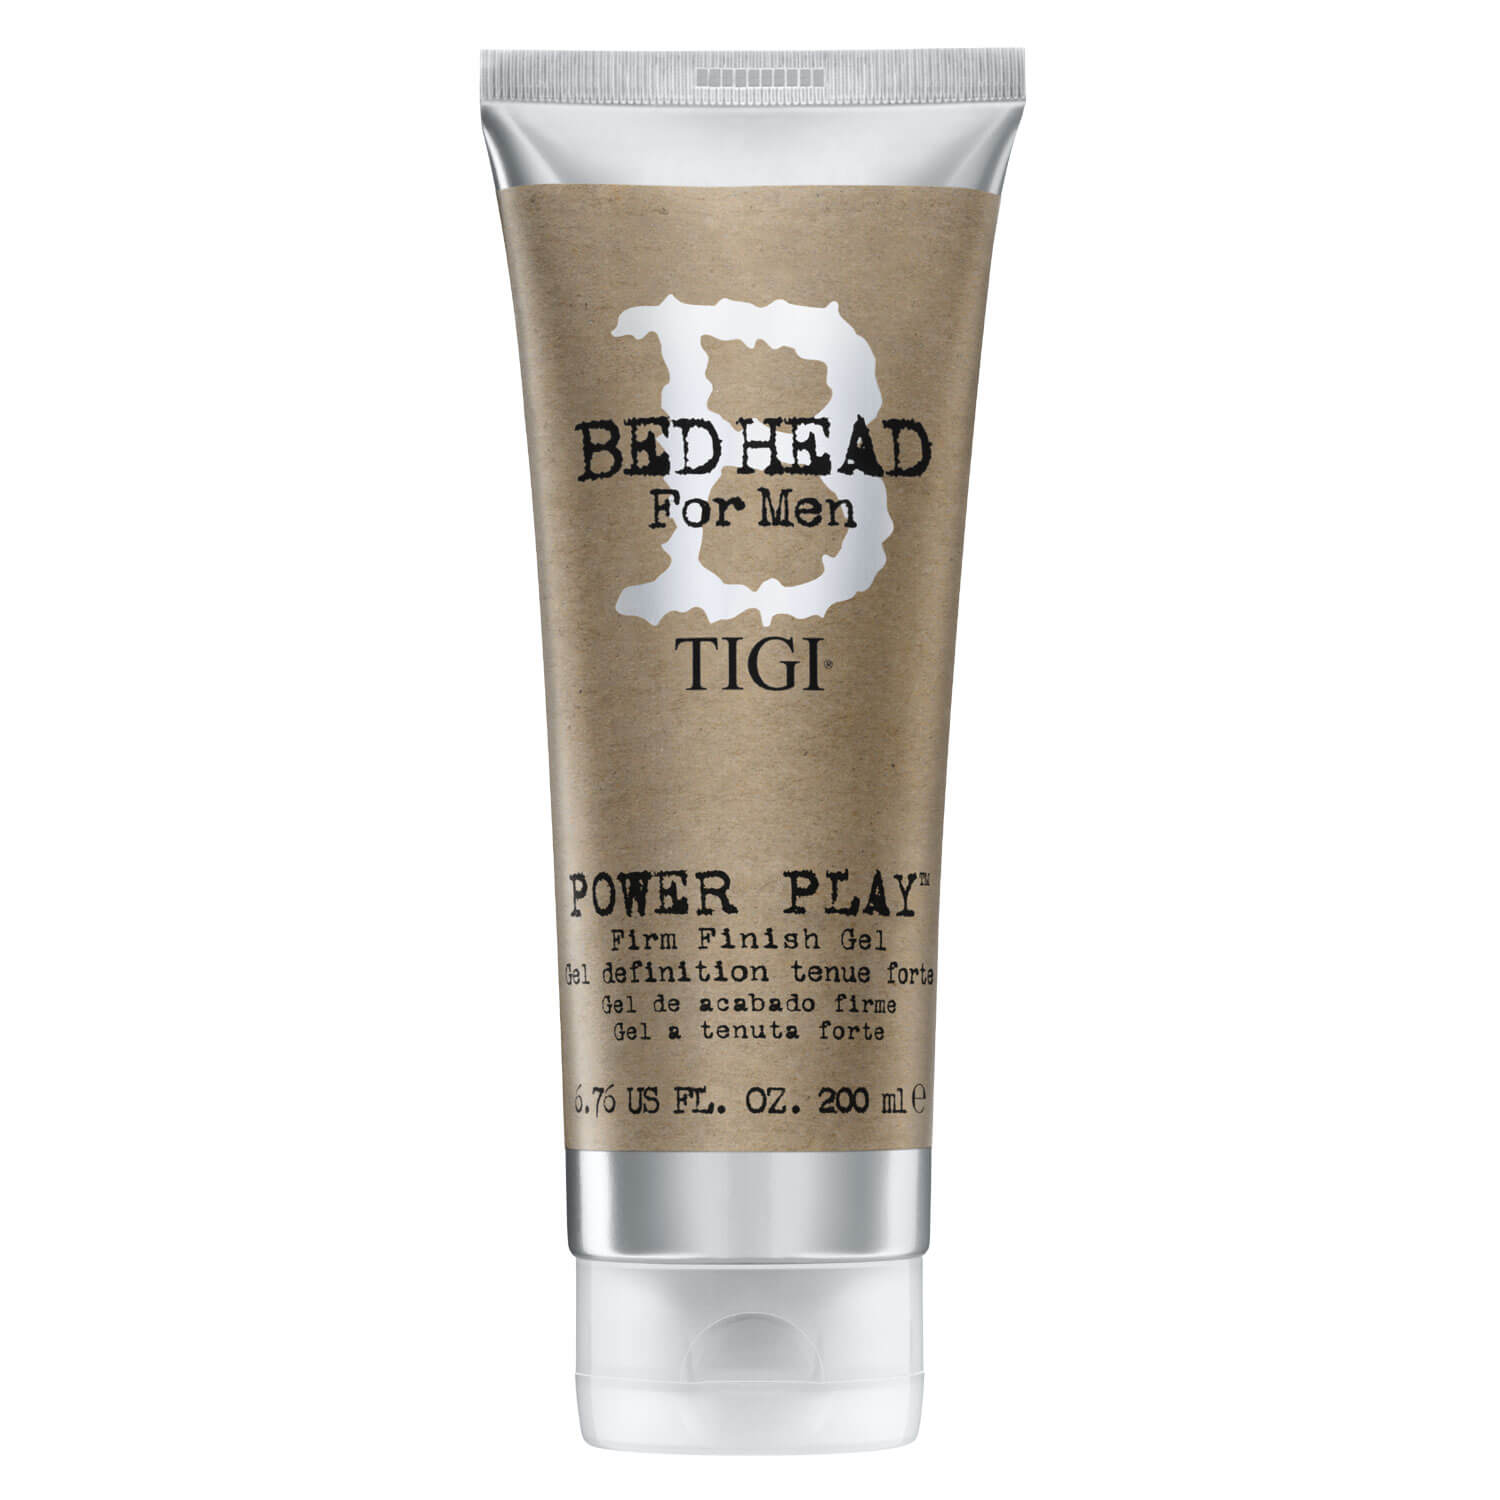 Bed Head For Men - Power Play NEW